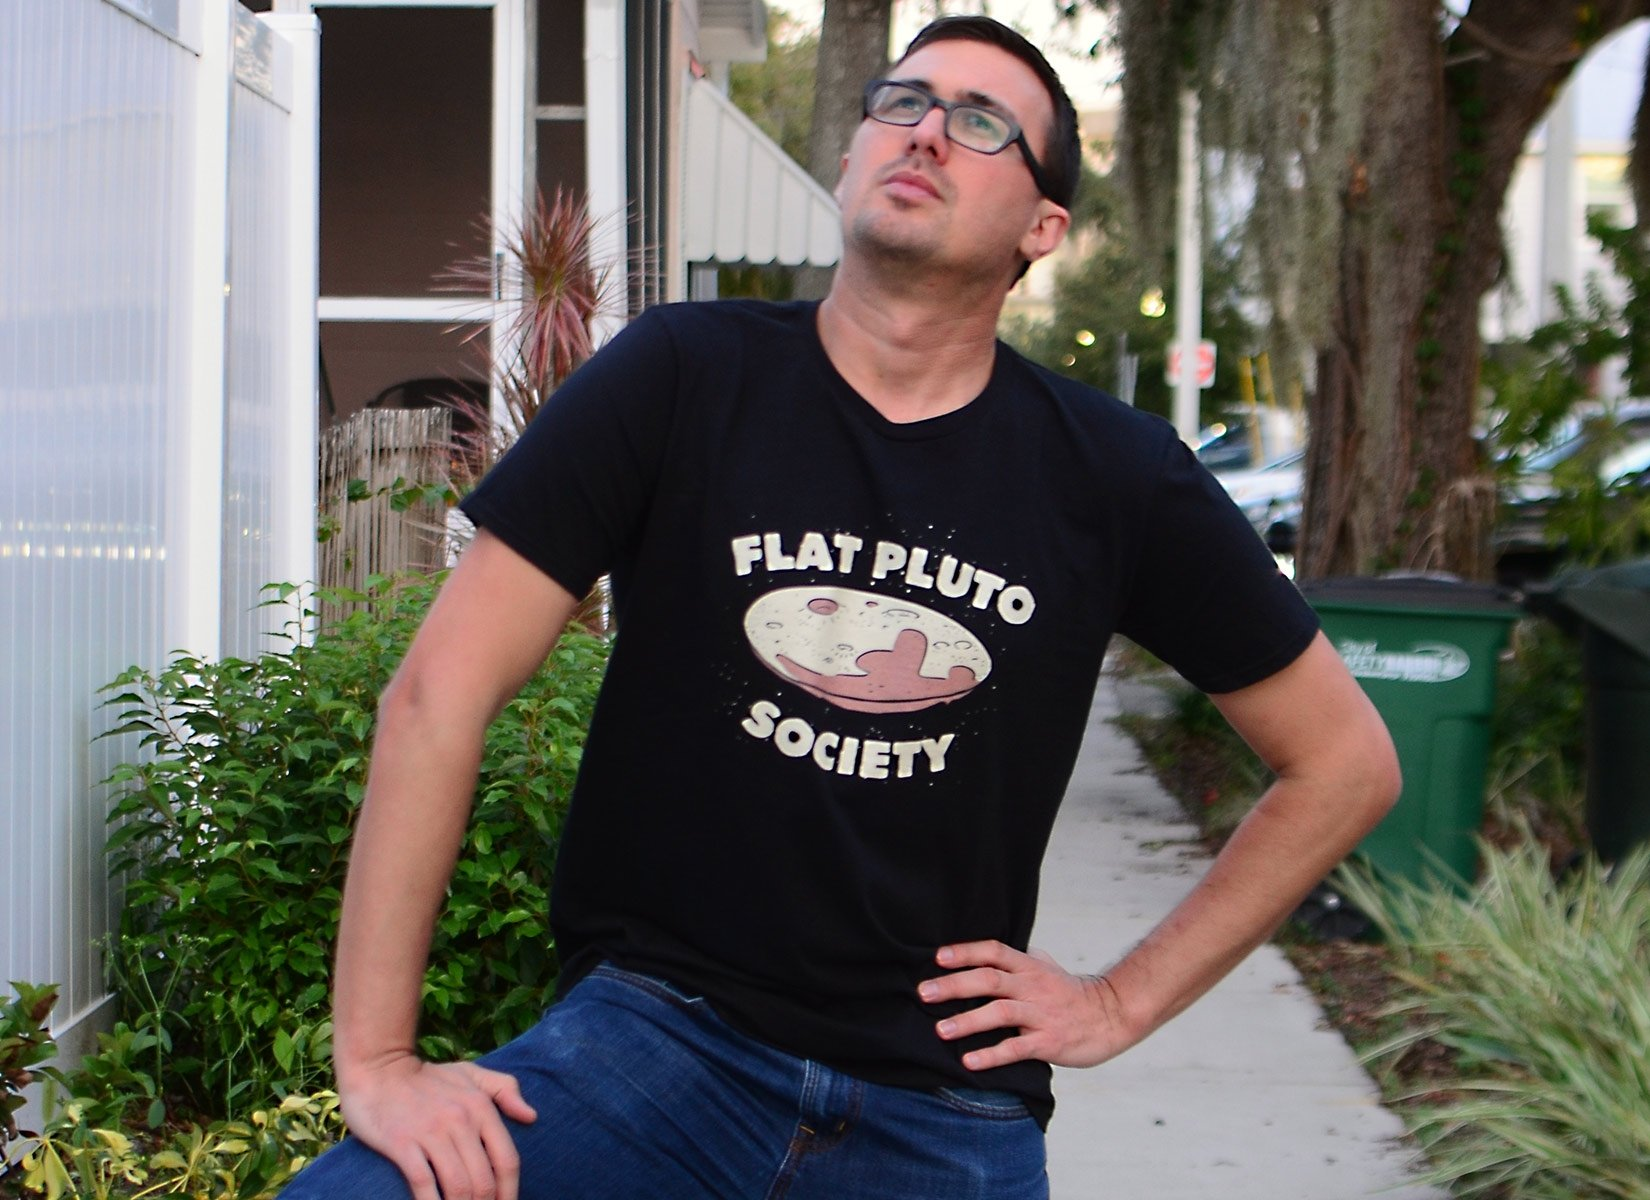 Flat Pluto Society on Mens T-Shirt